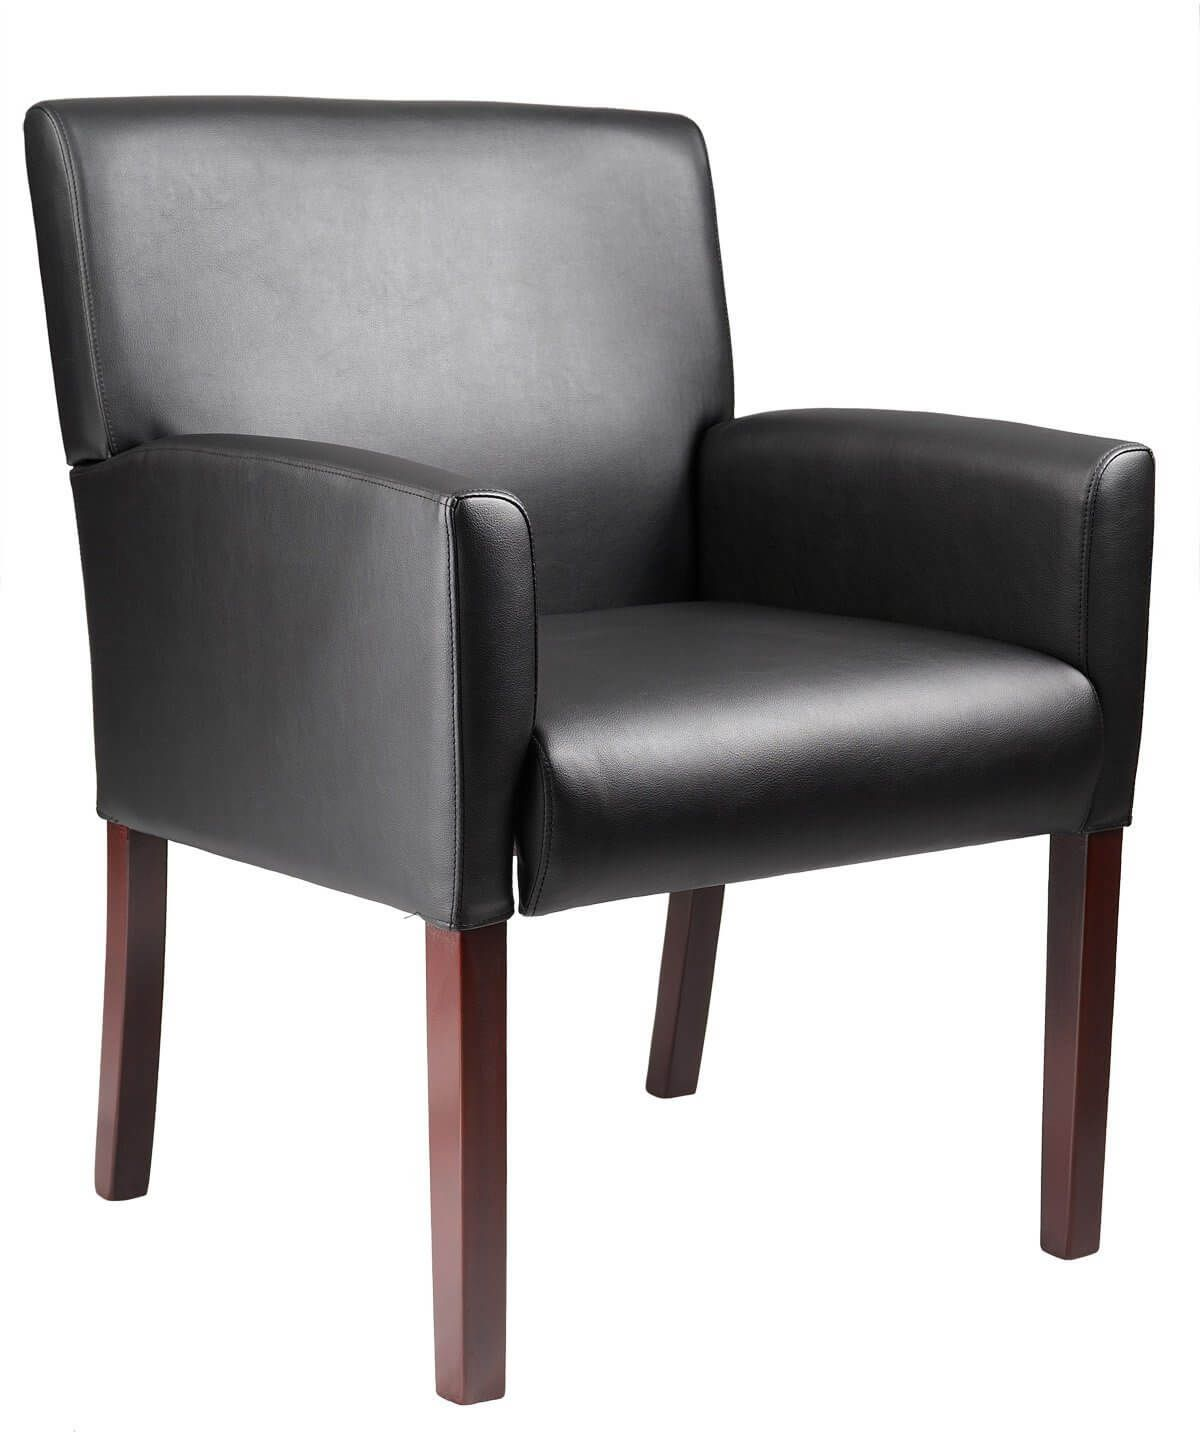 Genial Inspiring Accent Chairs Under 100 For Home Furniture Ideas: Black Leather Accent  Chairs Under 100 For Home Furniture Ideas